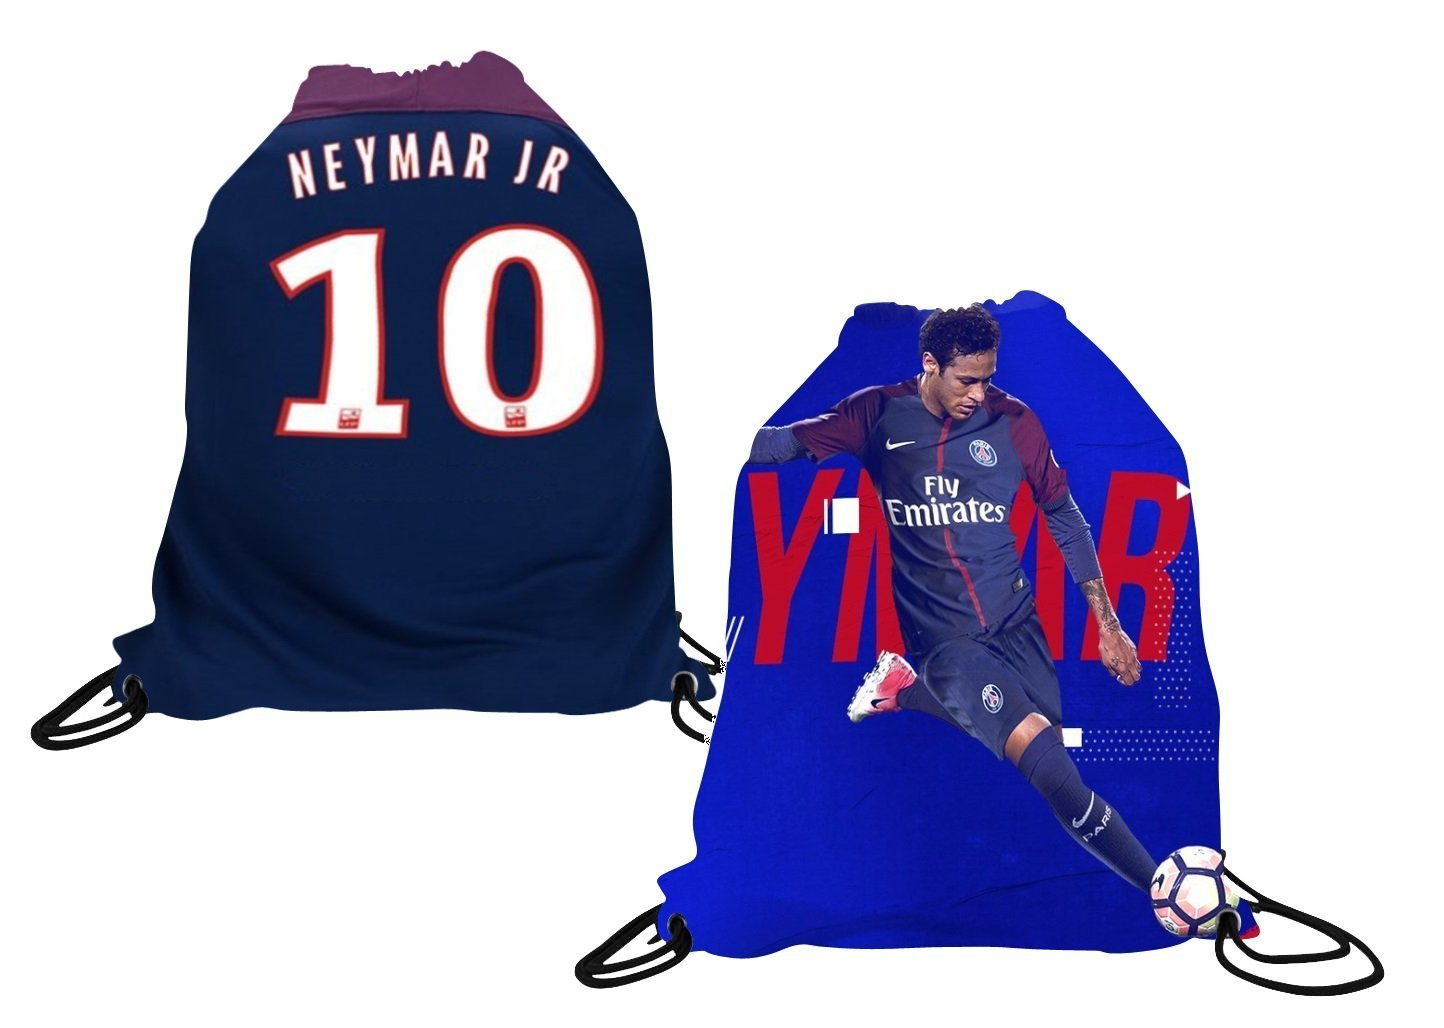 15a844c2e64 Neymar Jersey Style T-shirt Kids Neymar Jr Jersey PSG T-shirt Gift Set  Youth... Product Details